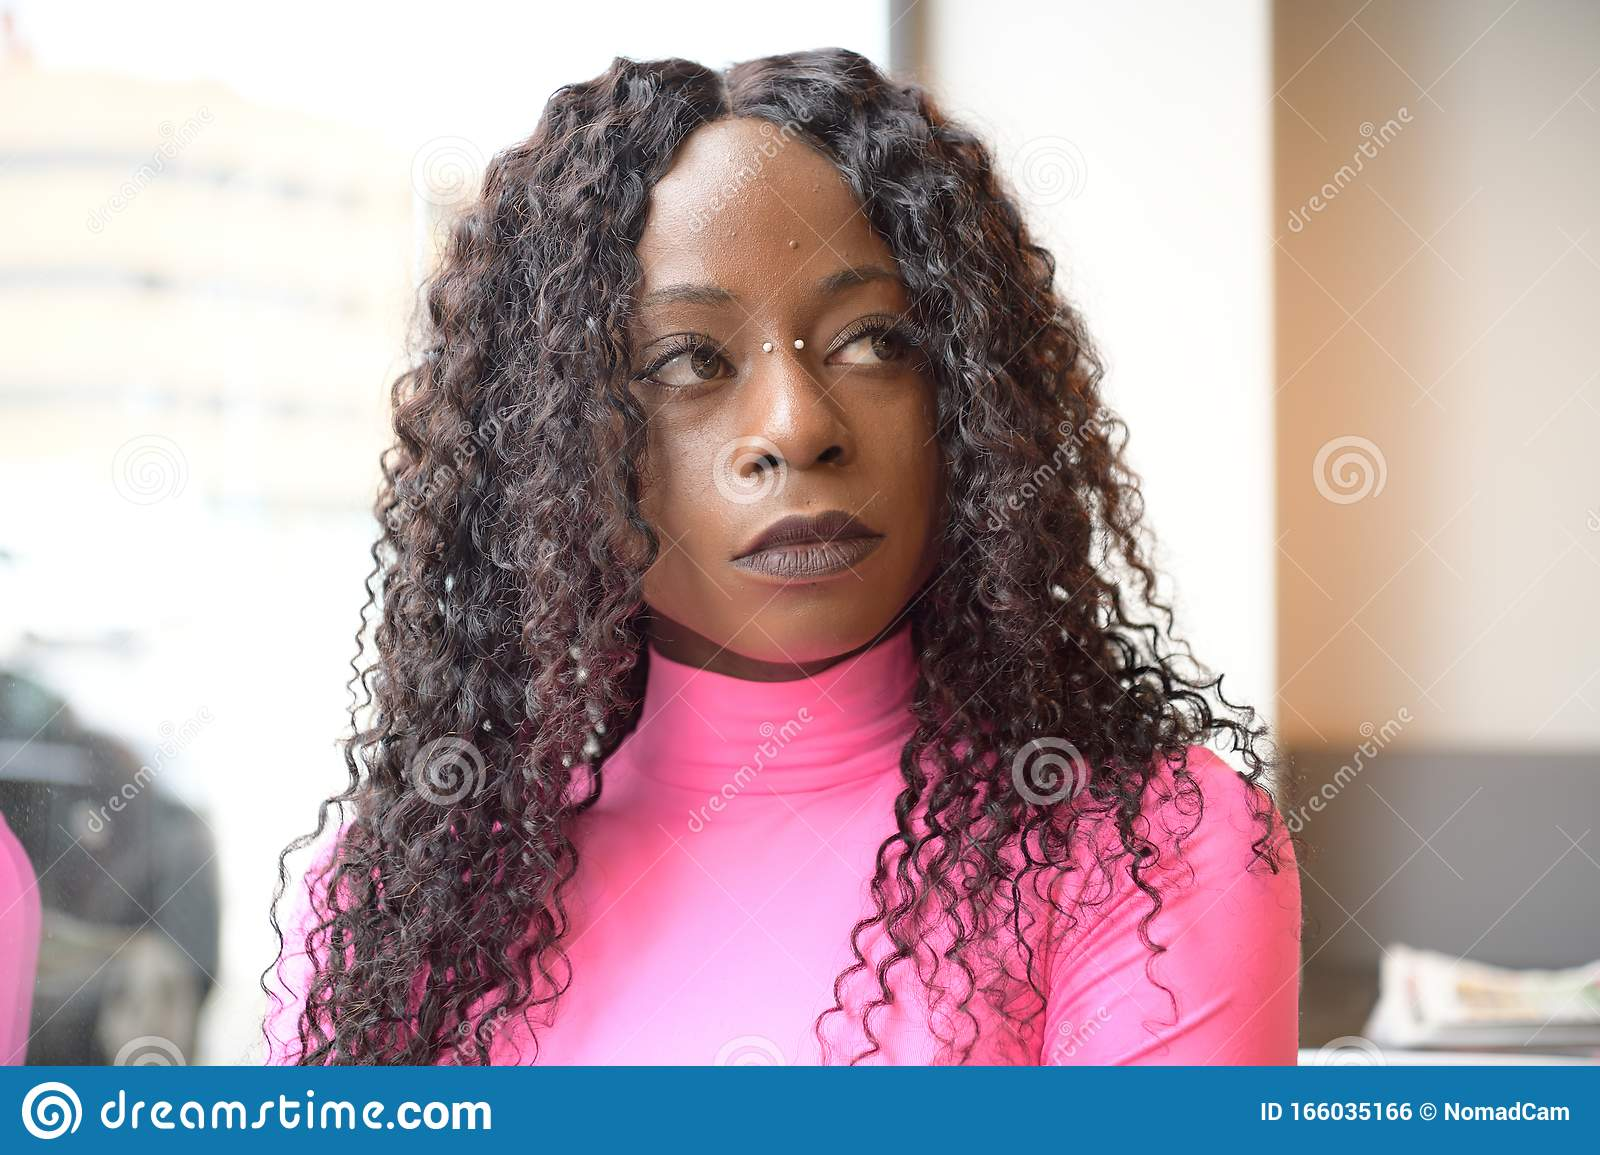 Portrait Of An Afro Style Black Girl With Long Black Curly Hair Looking To The Right In A Coffee Shop Stock Photo Image Of Long Camera 166035166